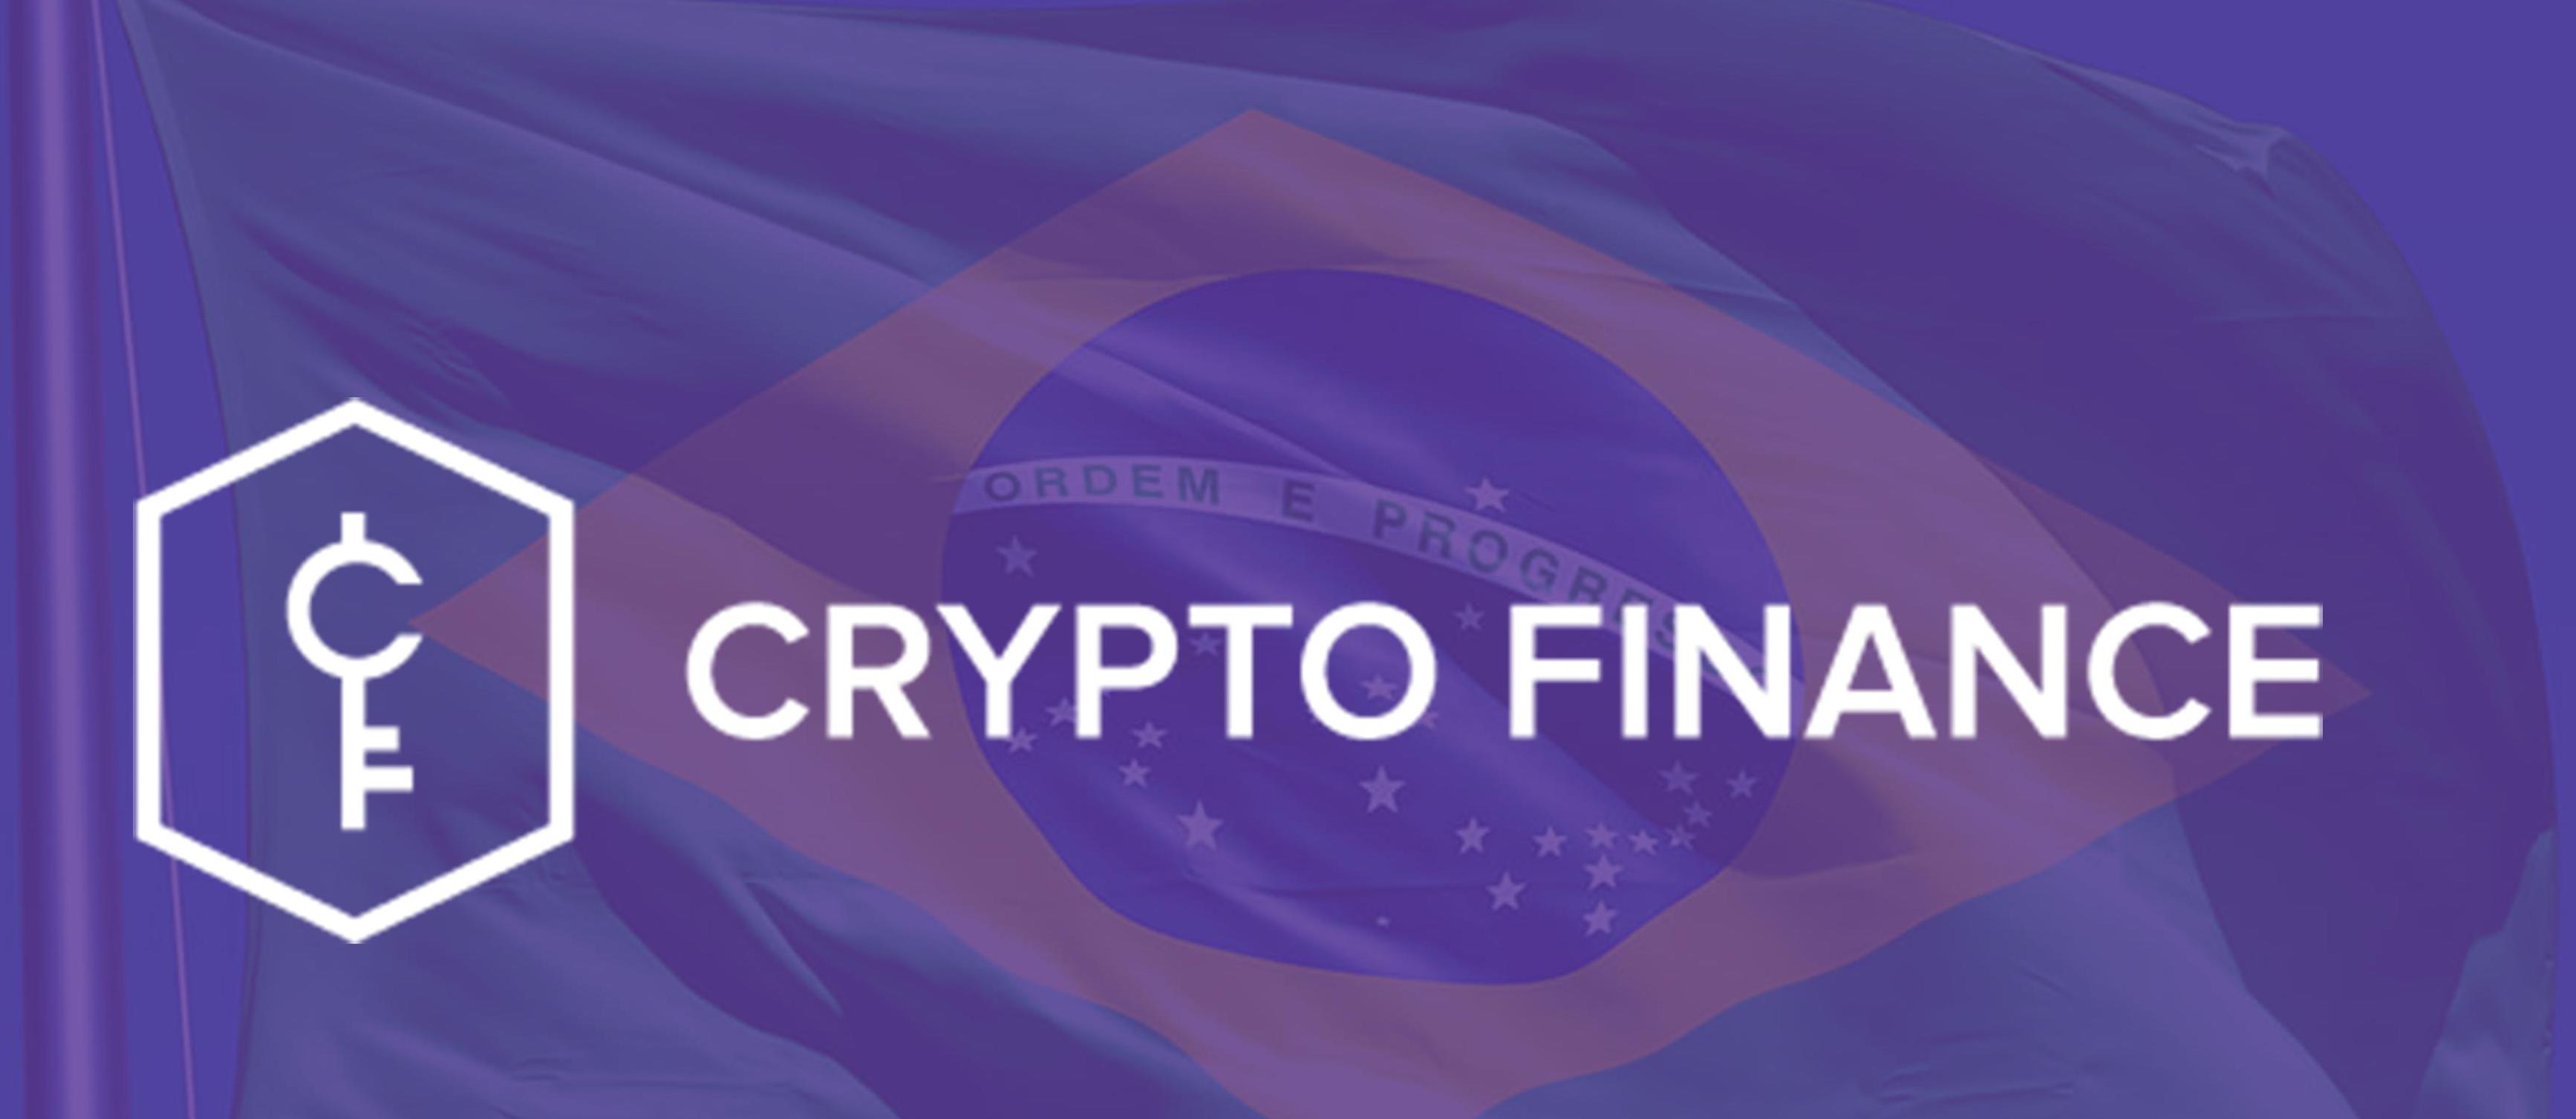 Cryptocurrency | Cryptocurrency News | Crypto FInance MAsters degree | FGV | Brazil